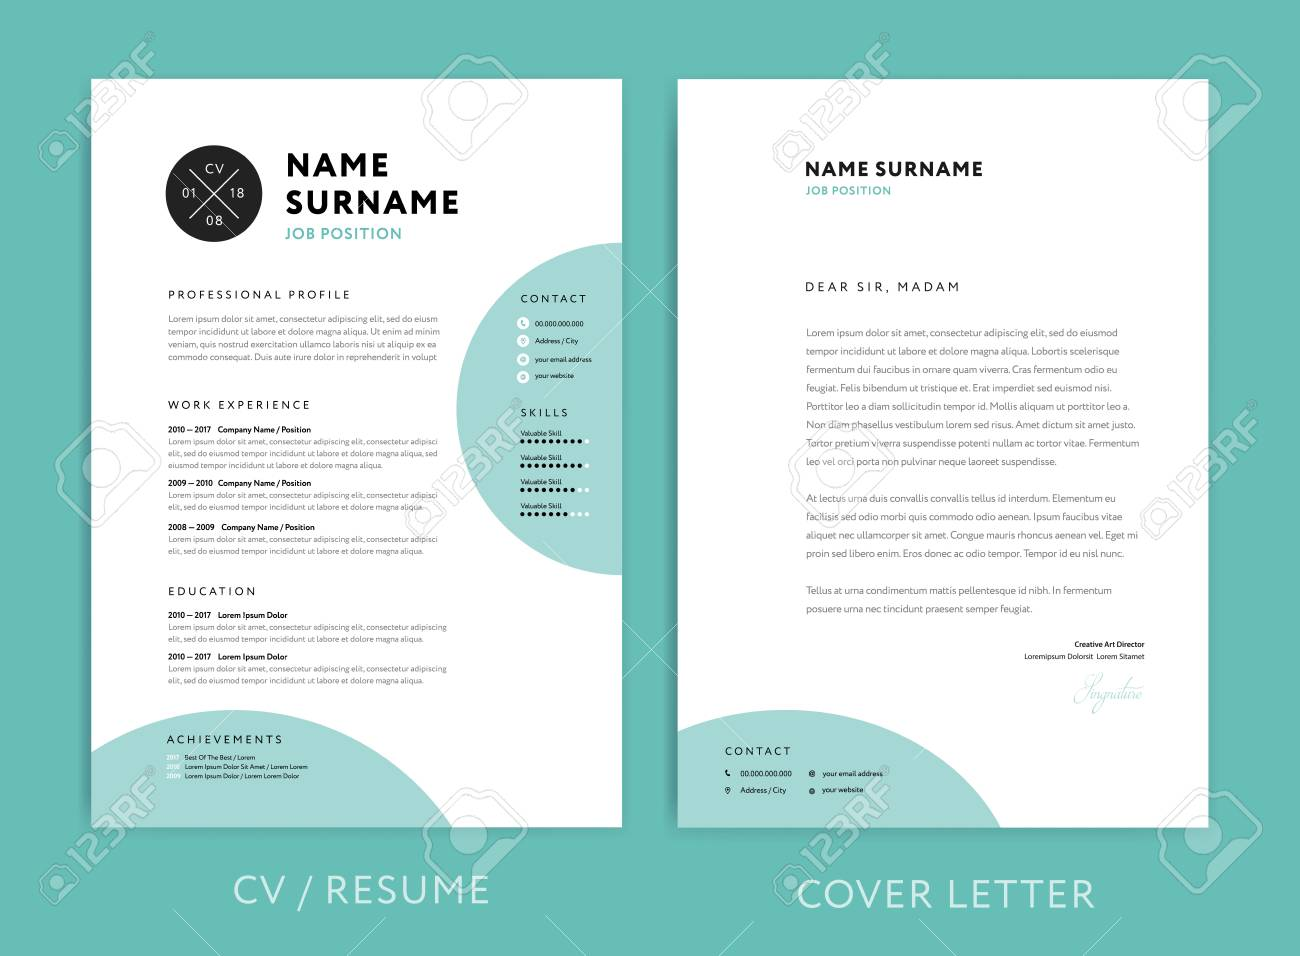 creative cv resume template teal green background color minimalist